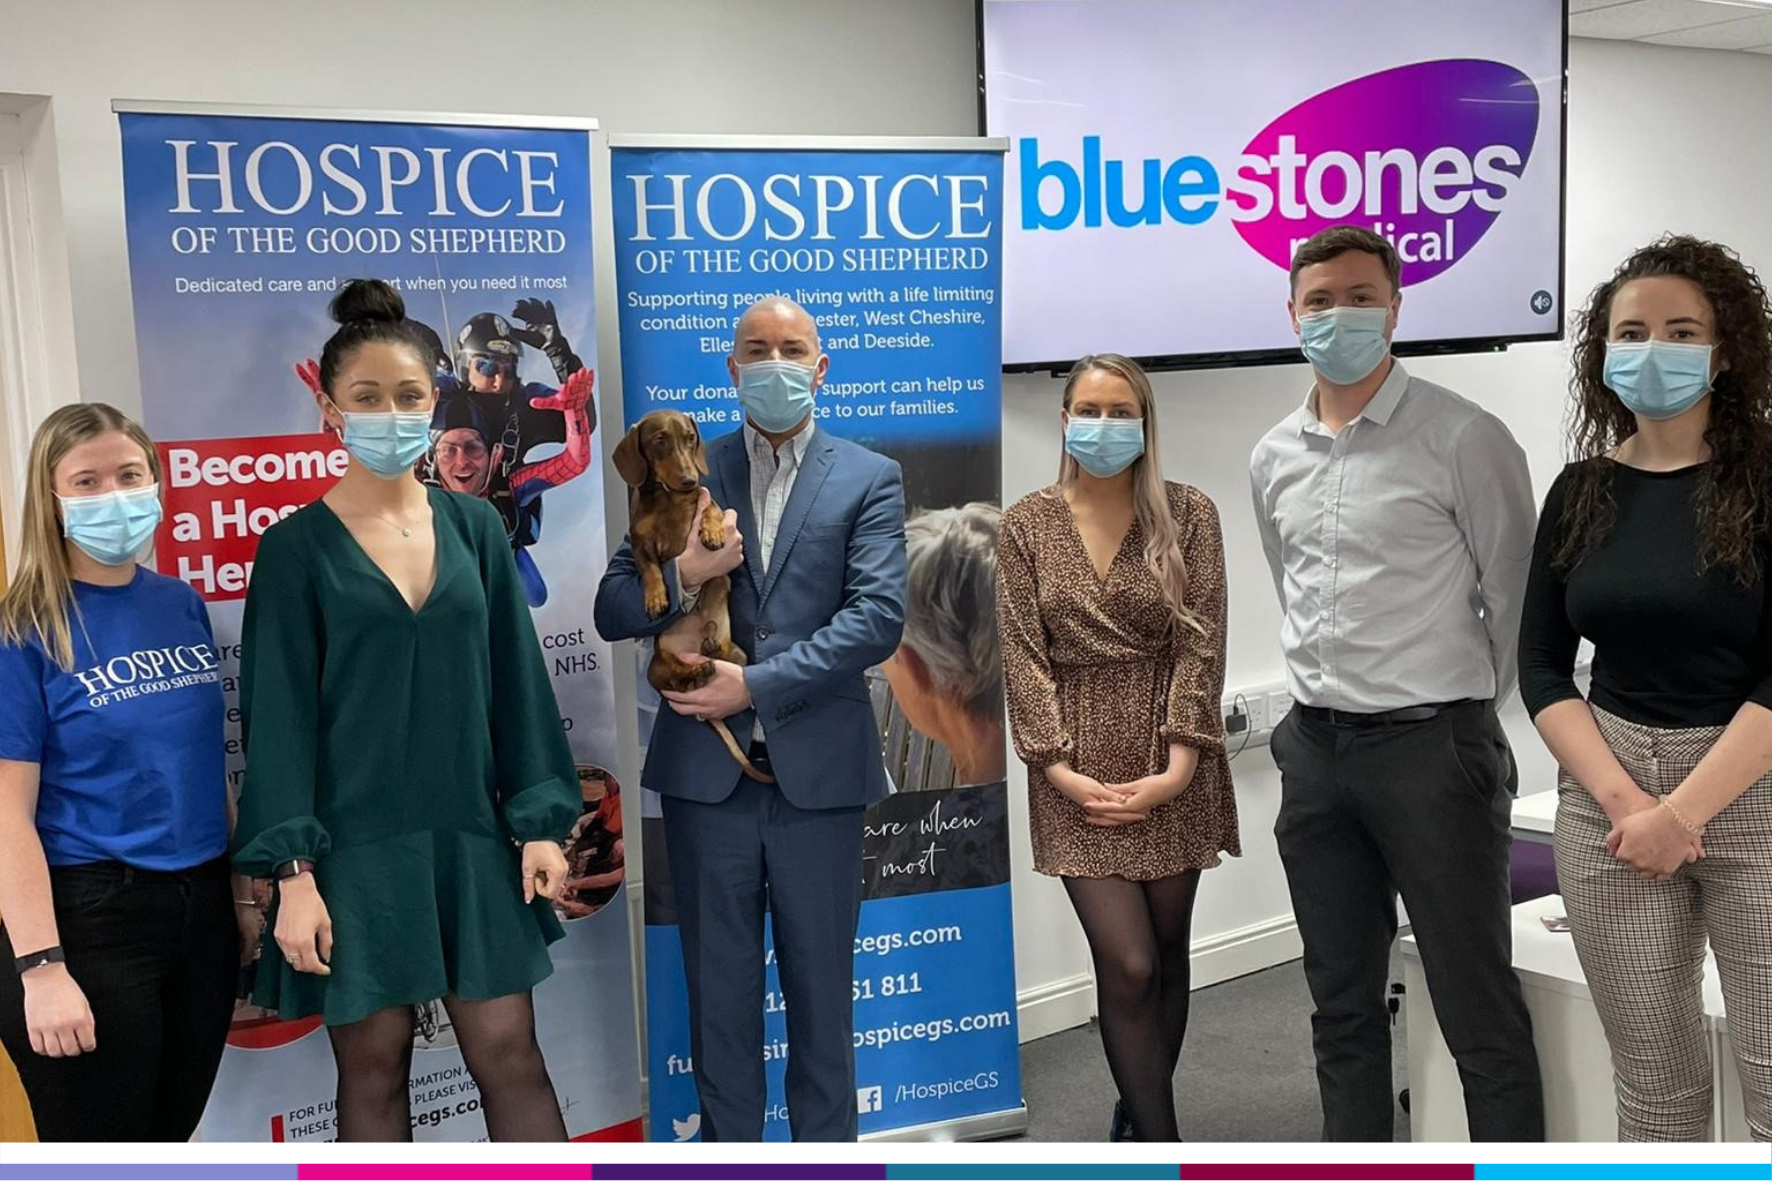 BSM - supports - hospice